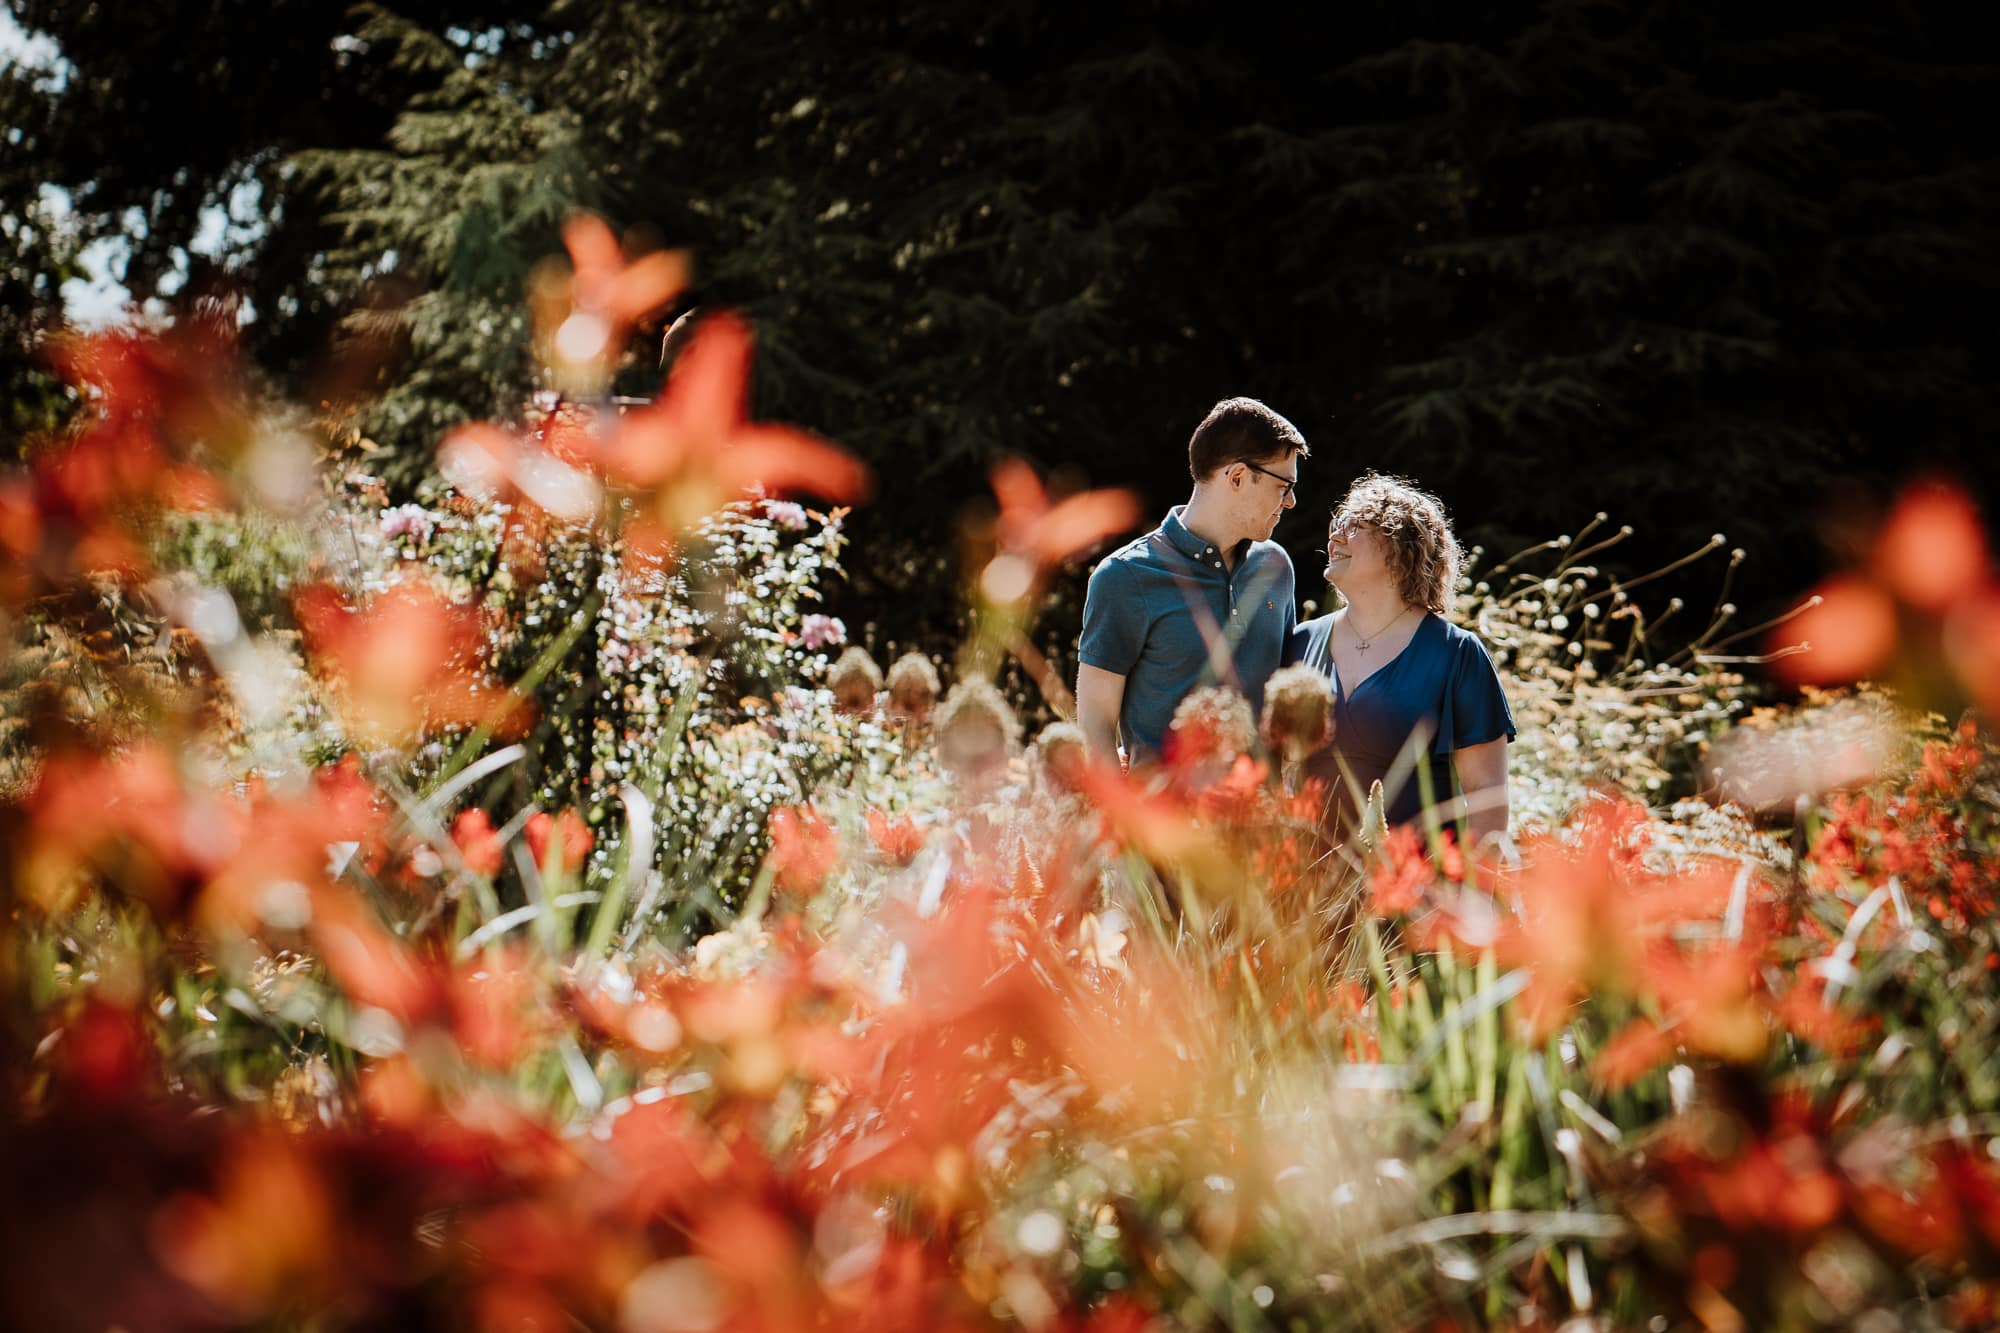 Couple looking at each other happily in flowers